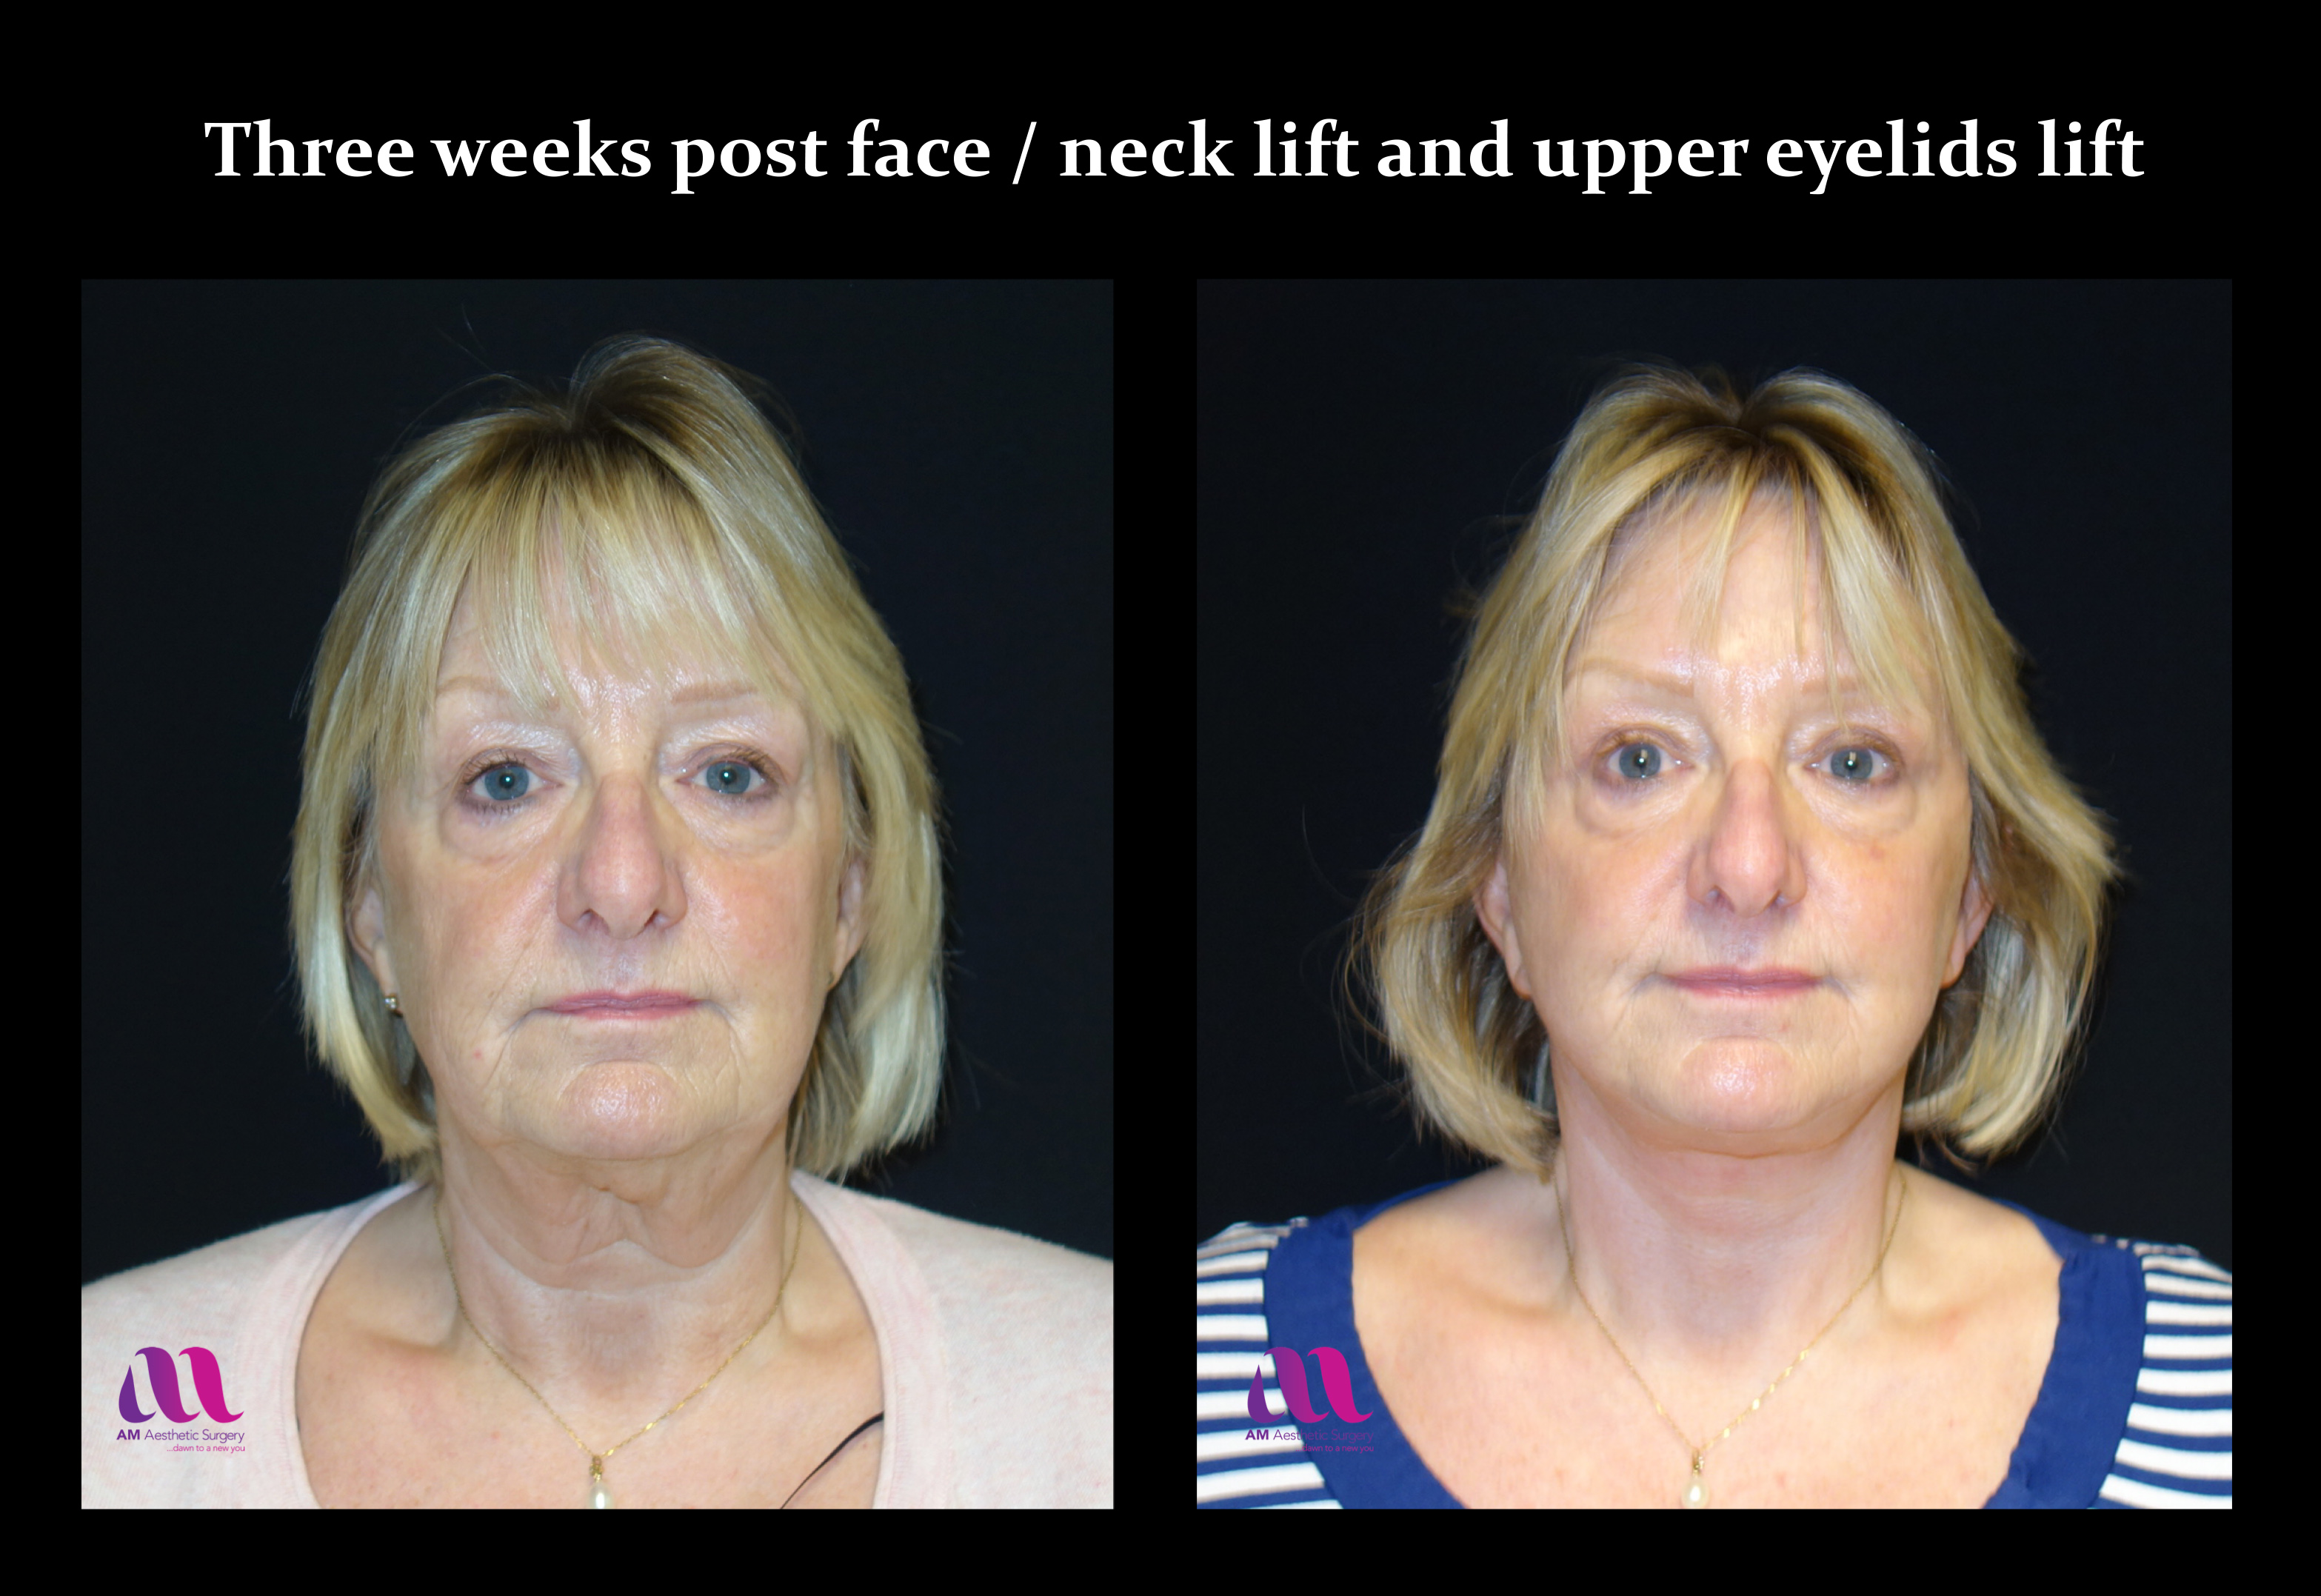 Face Lift +Upp Eyelids12d